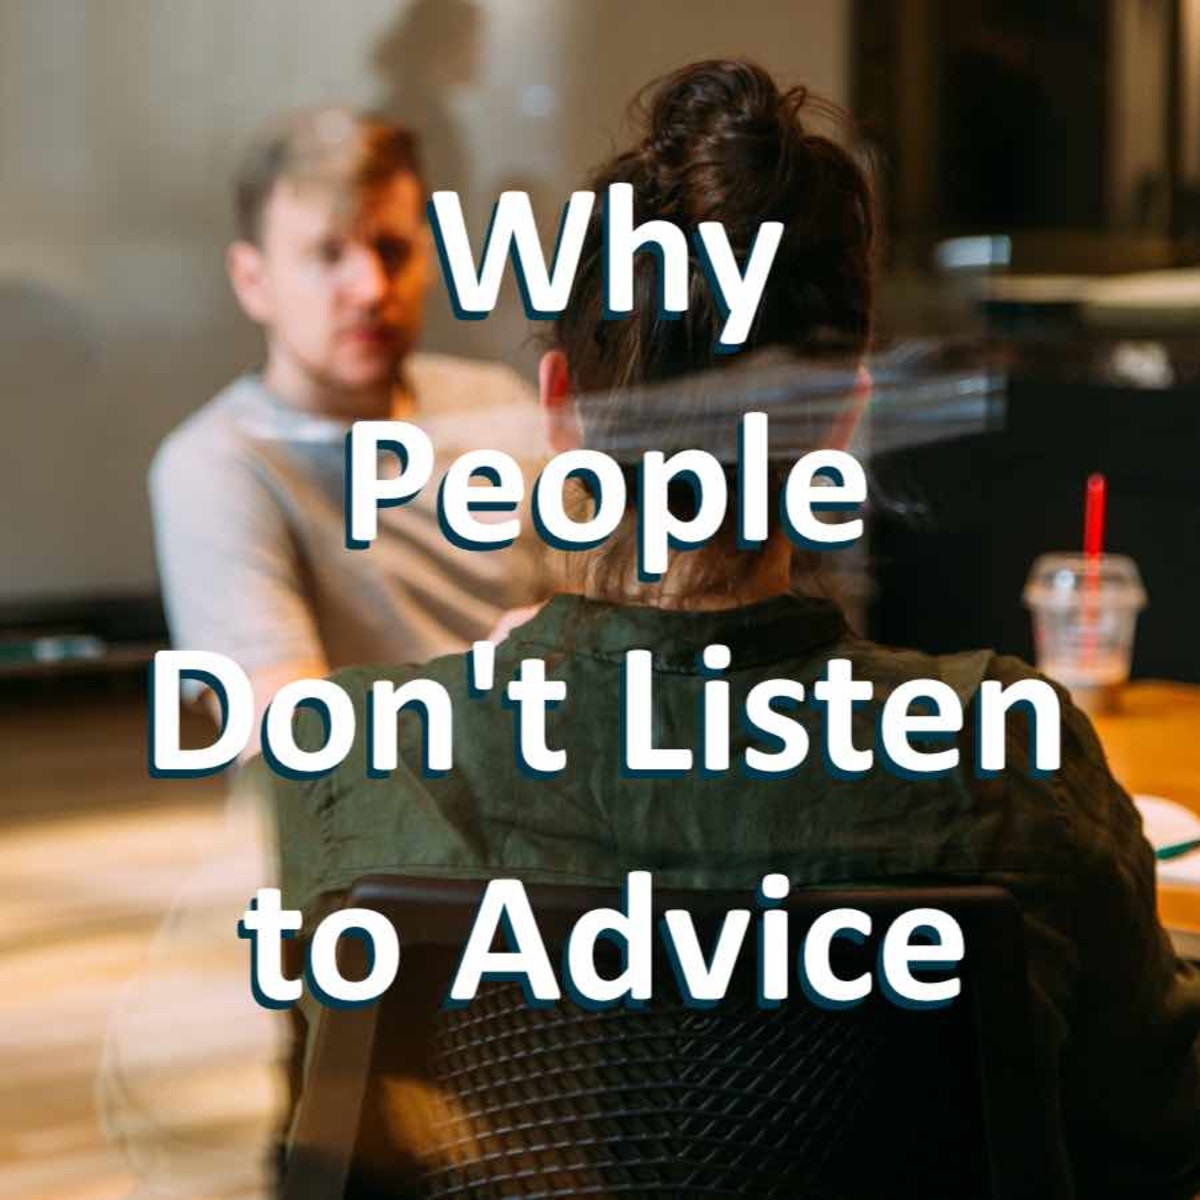 Why Don't People Listen to Advice?